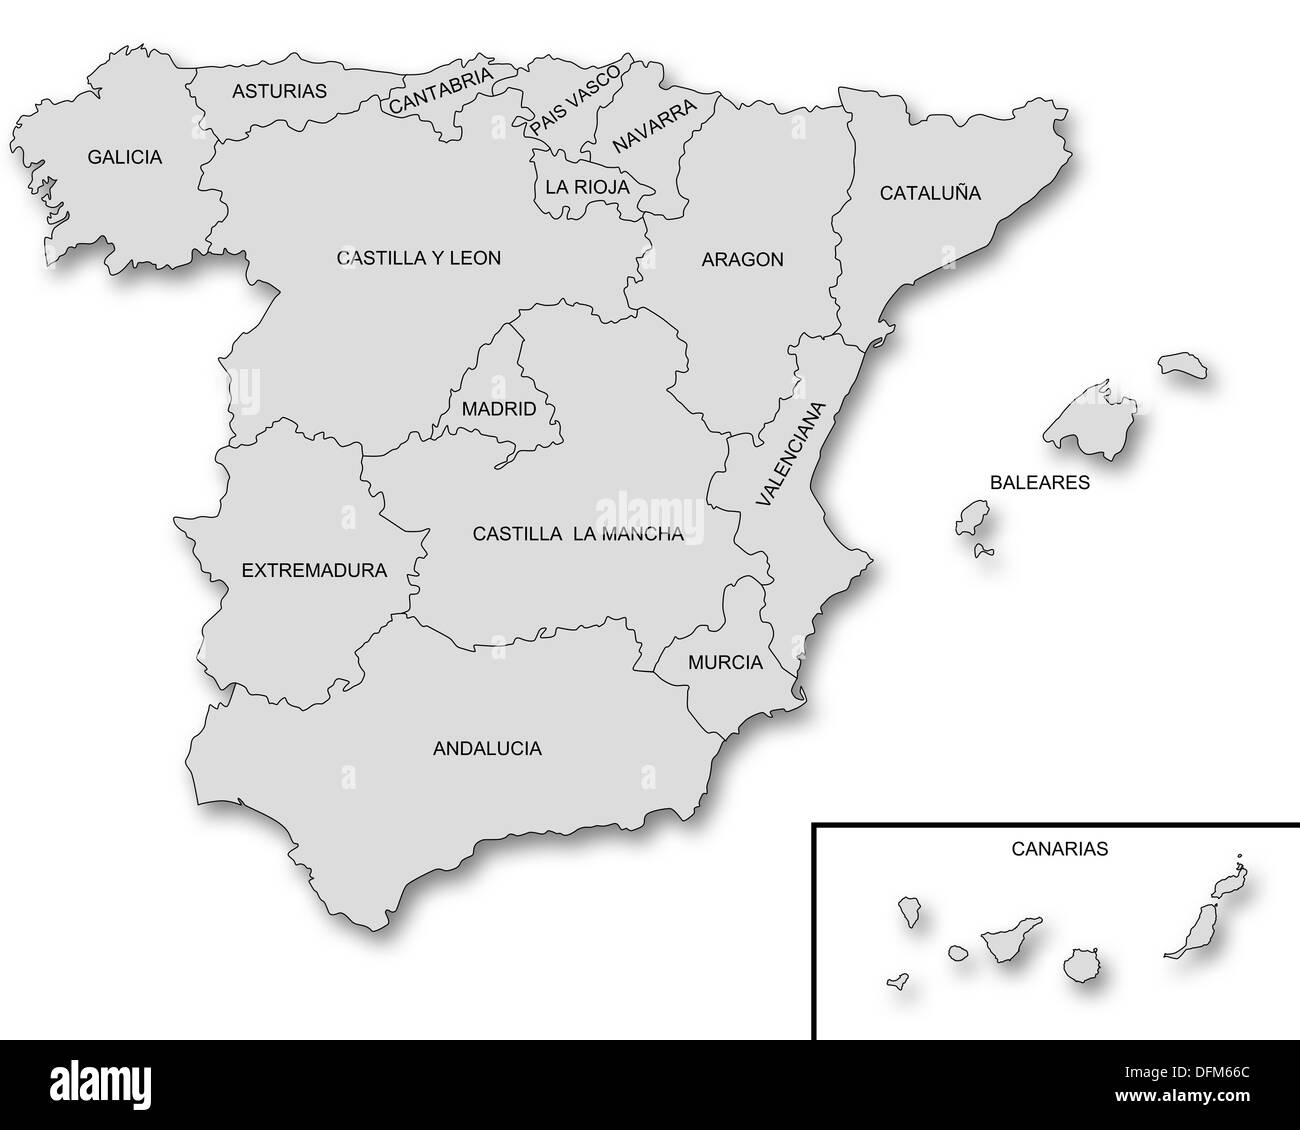 Map of Spain - Stock Image